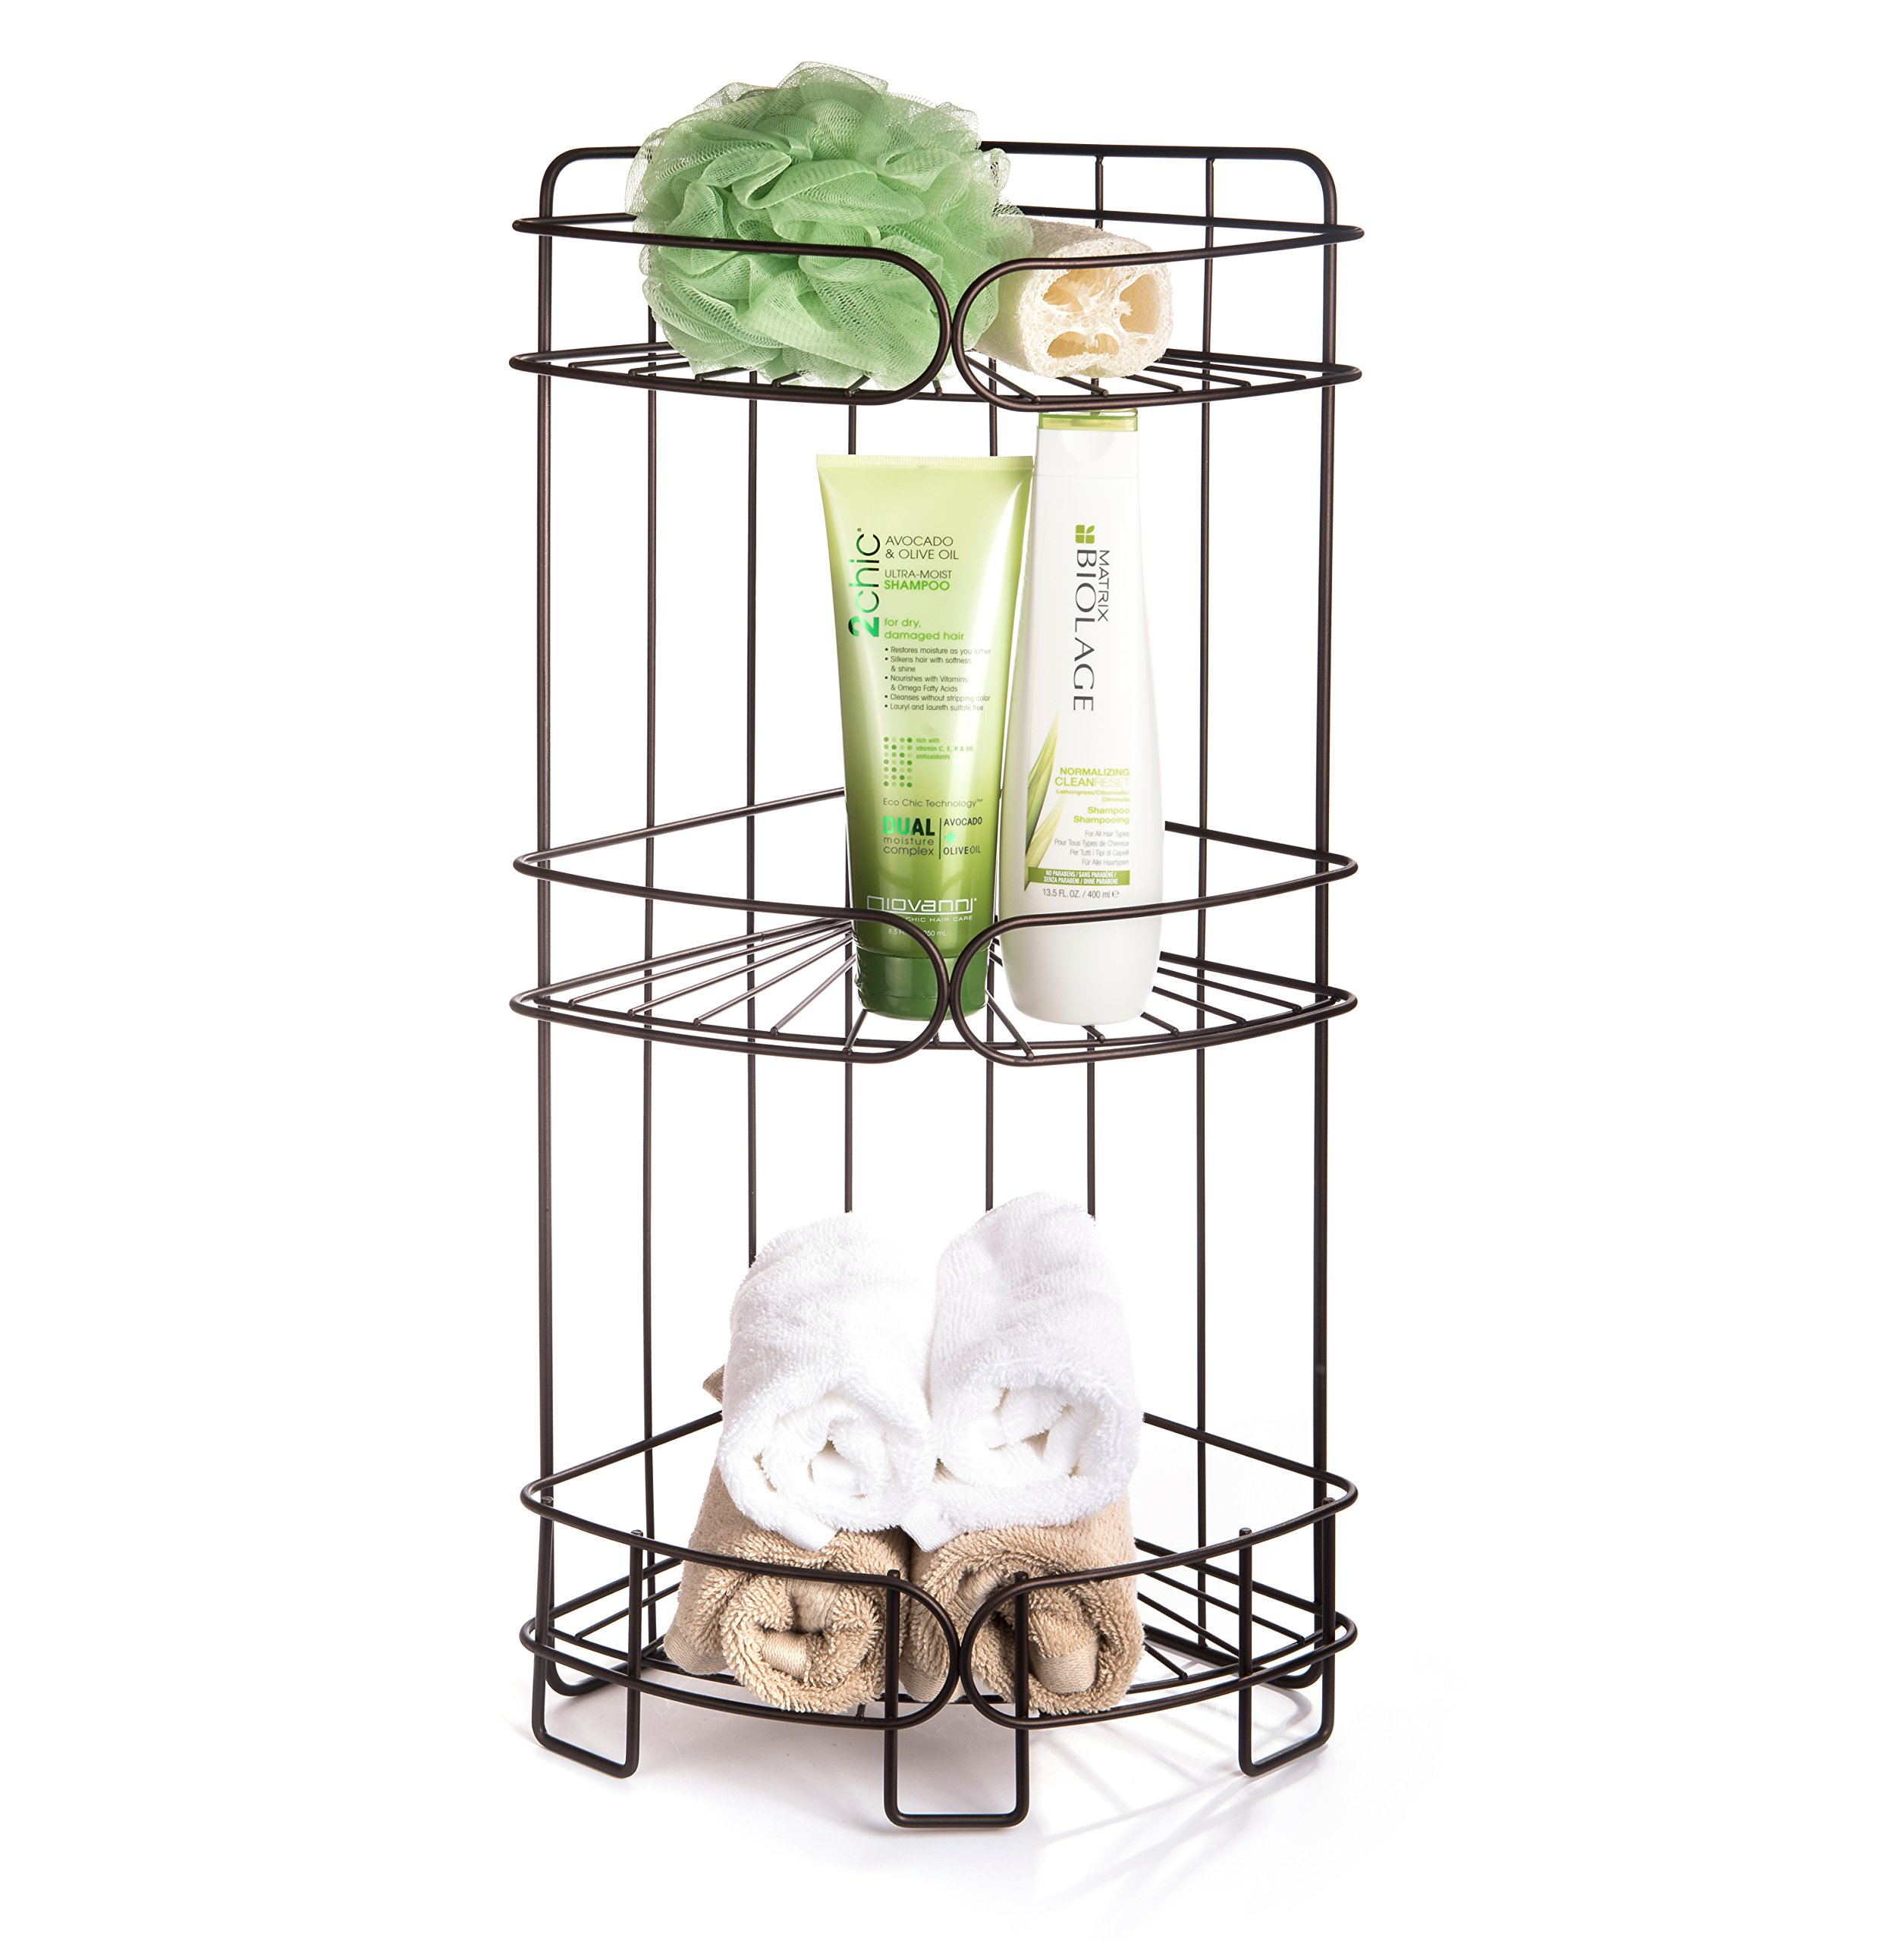 AMG and Enchante Accessories Free Standing Bathroom Spa Tower Storage Caddy, FC100004 ORB, Oil Rubbed Bronze